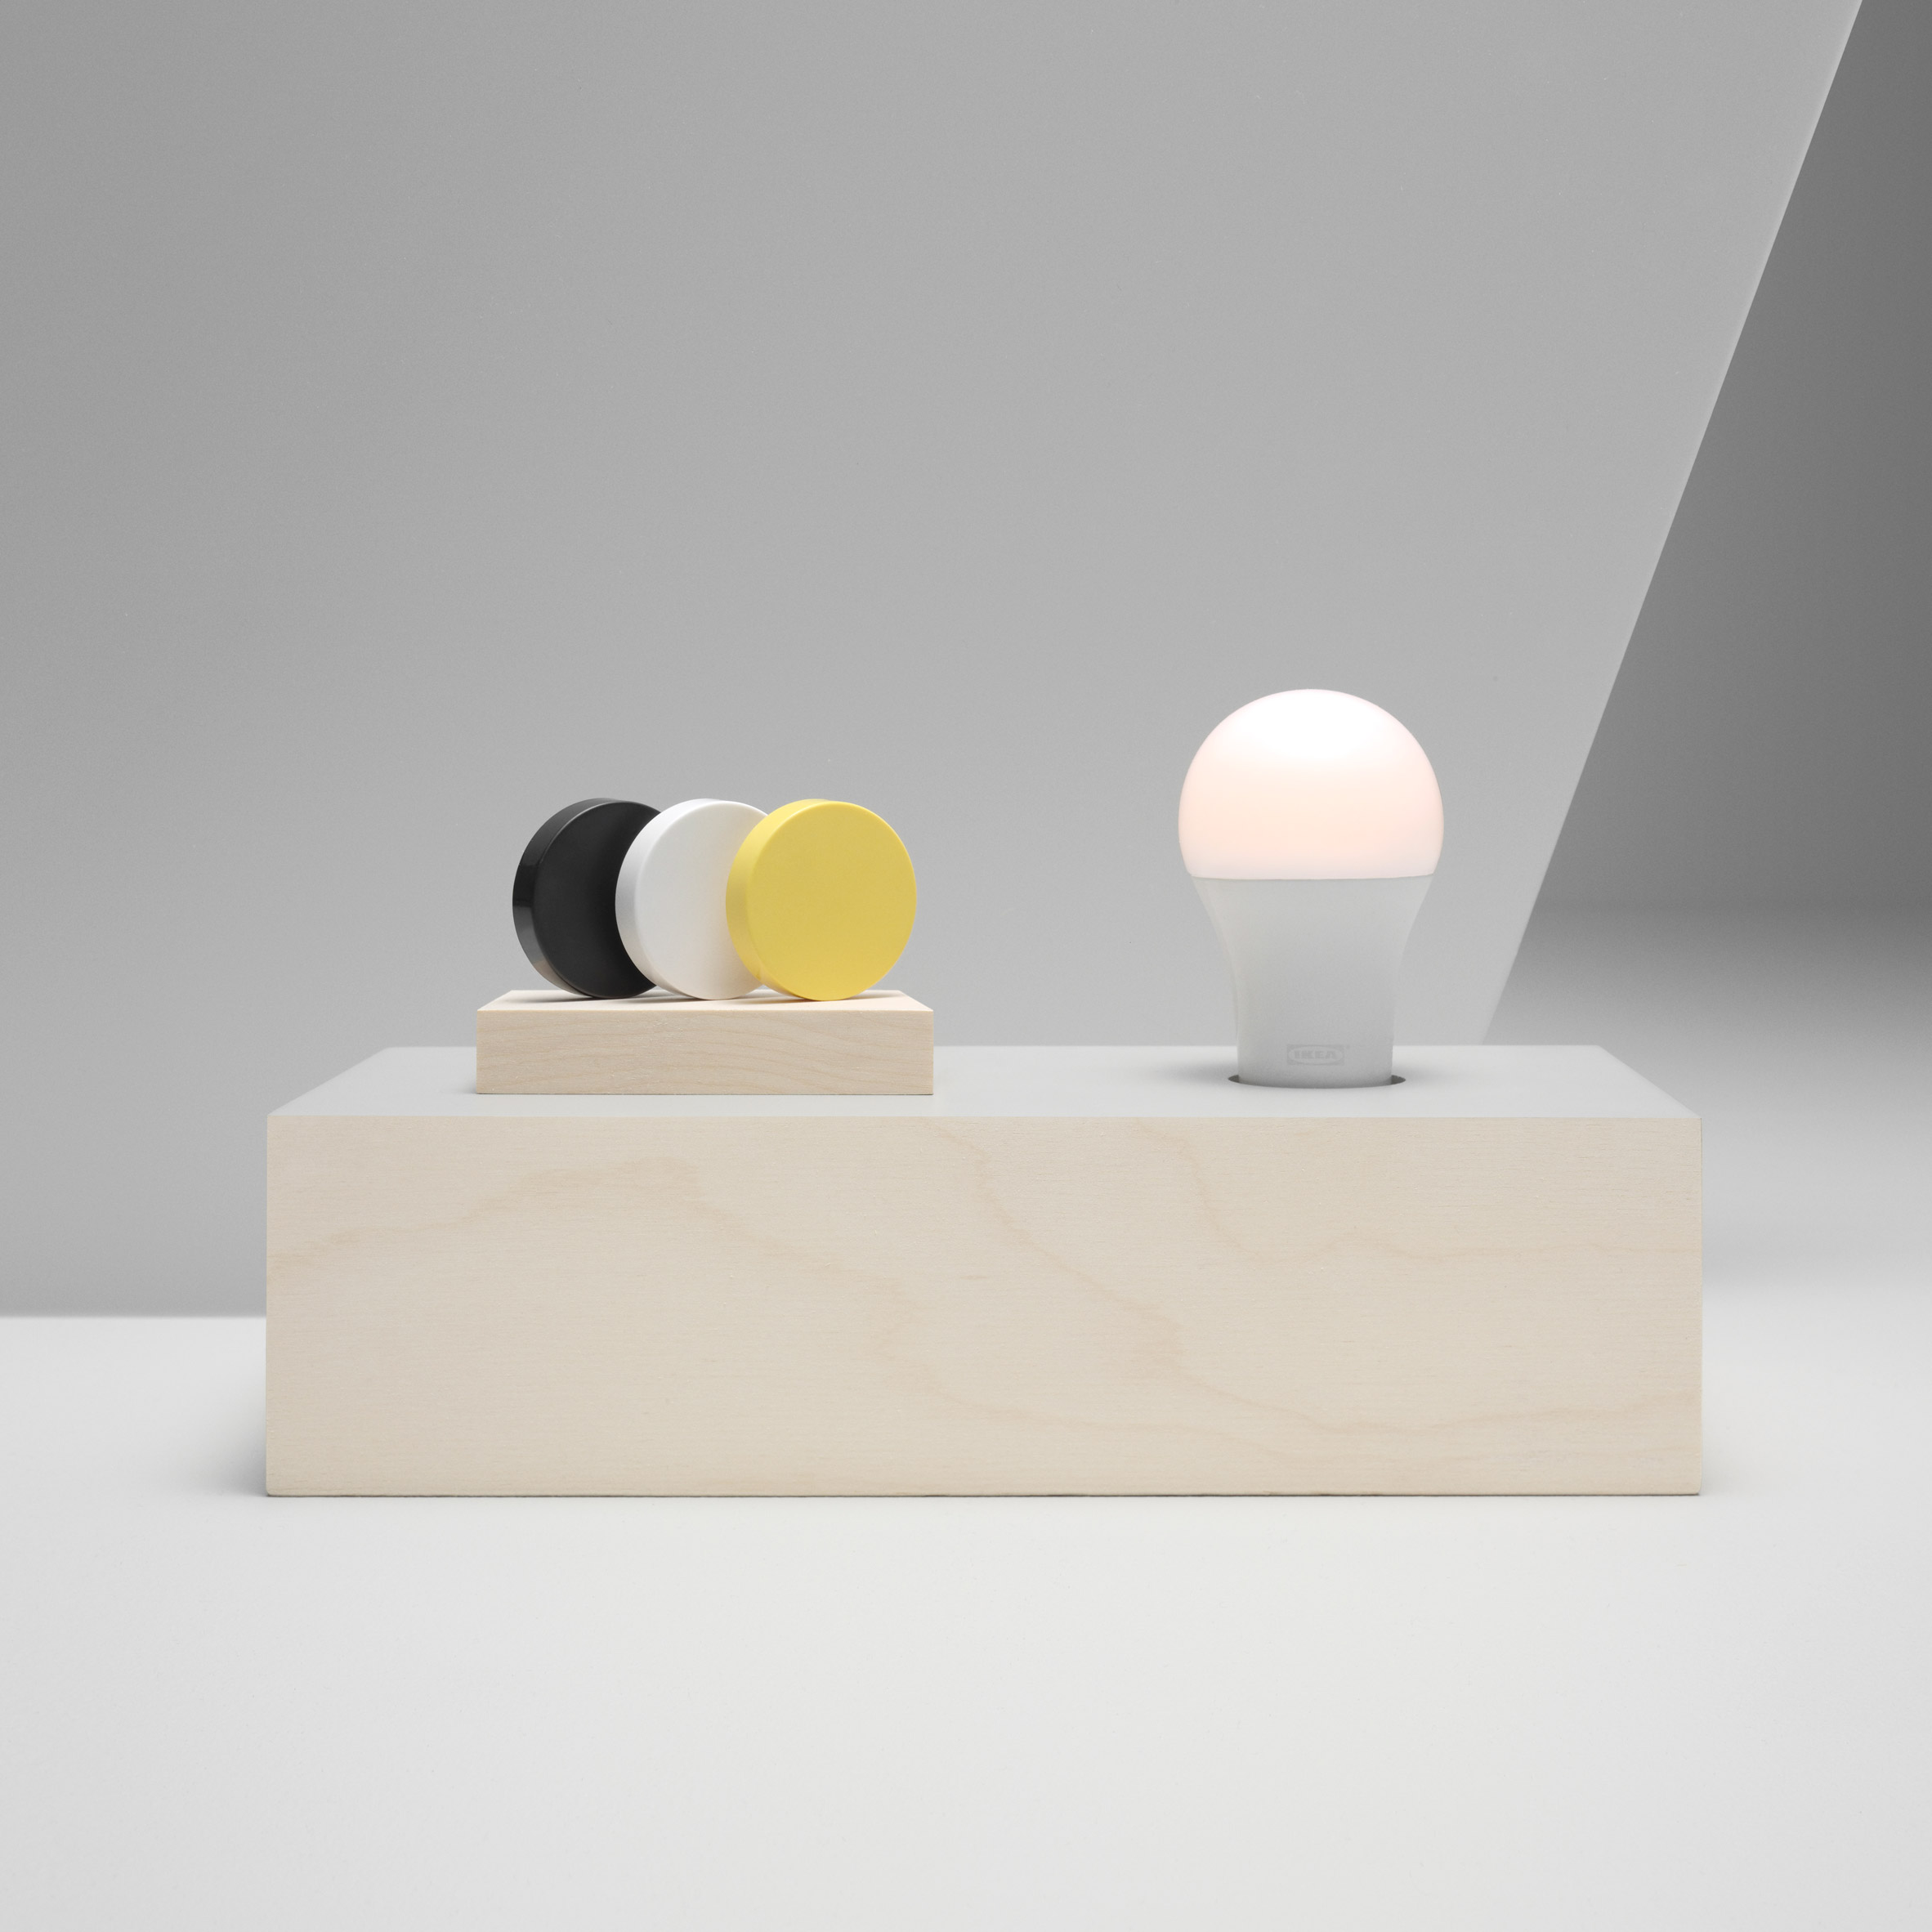 ikea-smart-lights-design-lighting-lamps_dezeen_2364_col_1